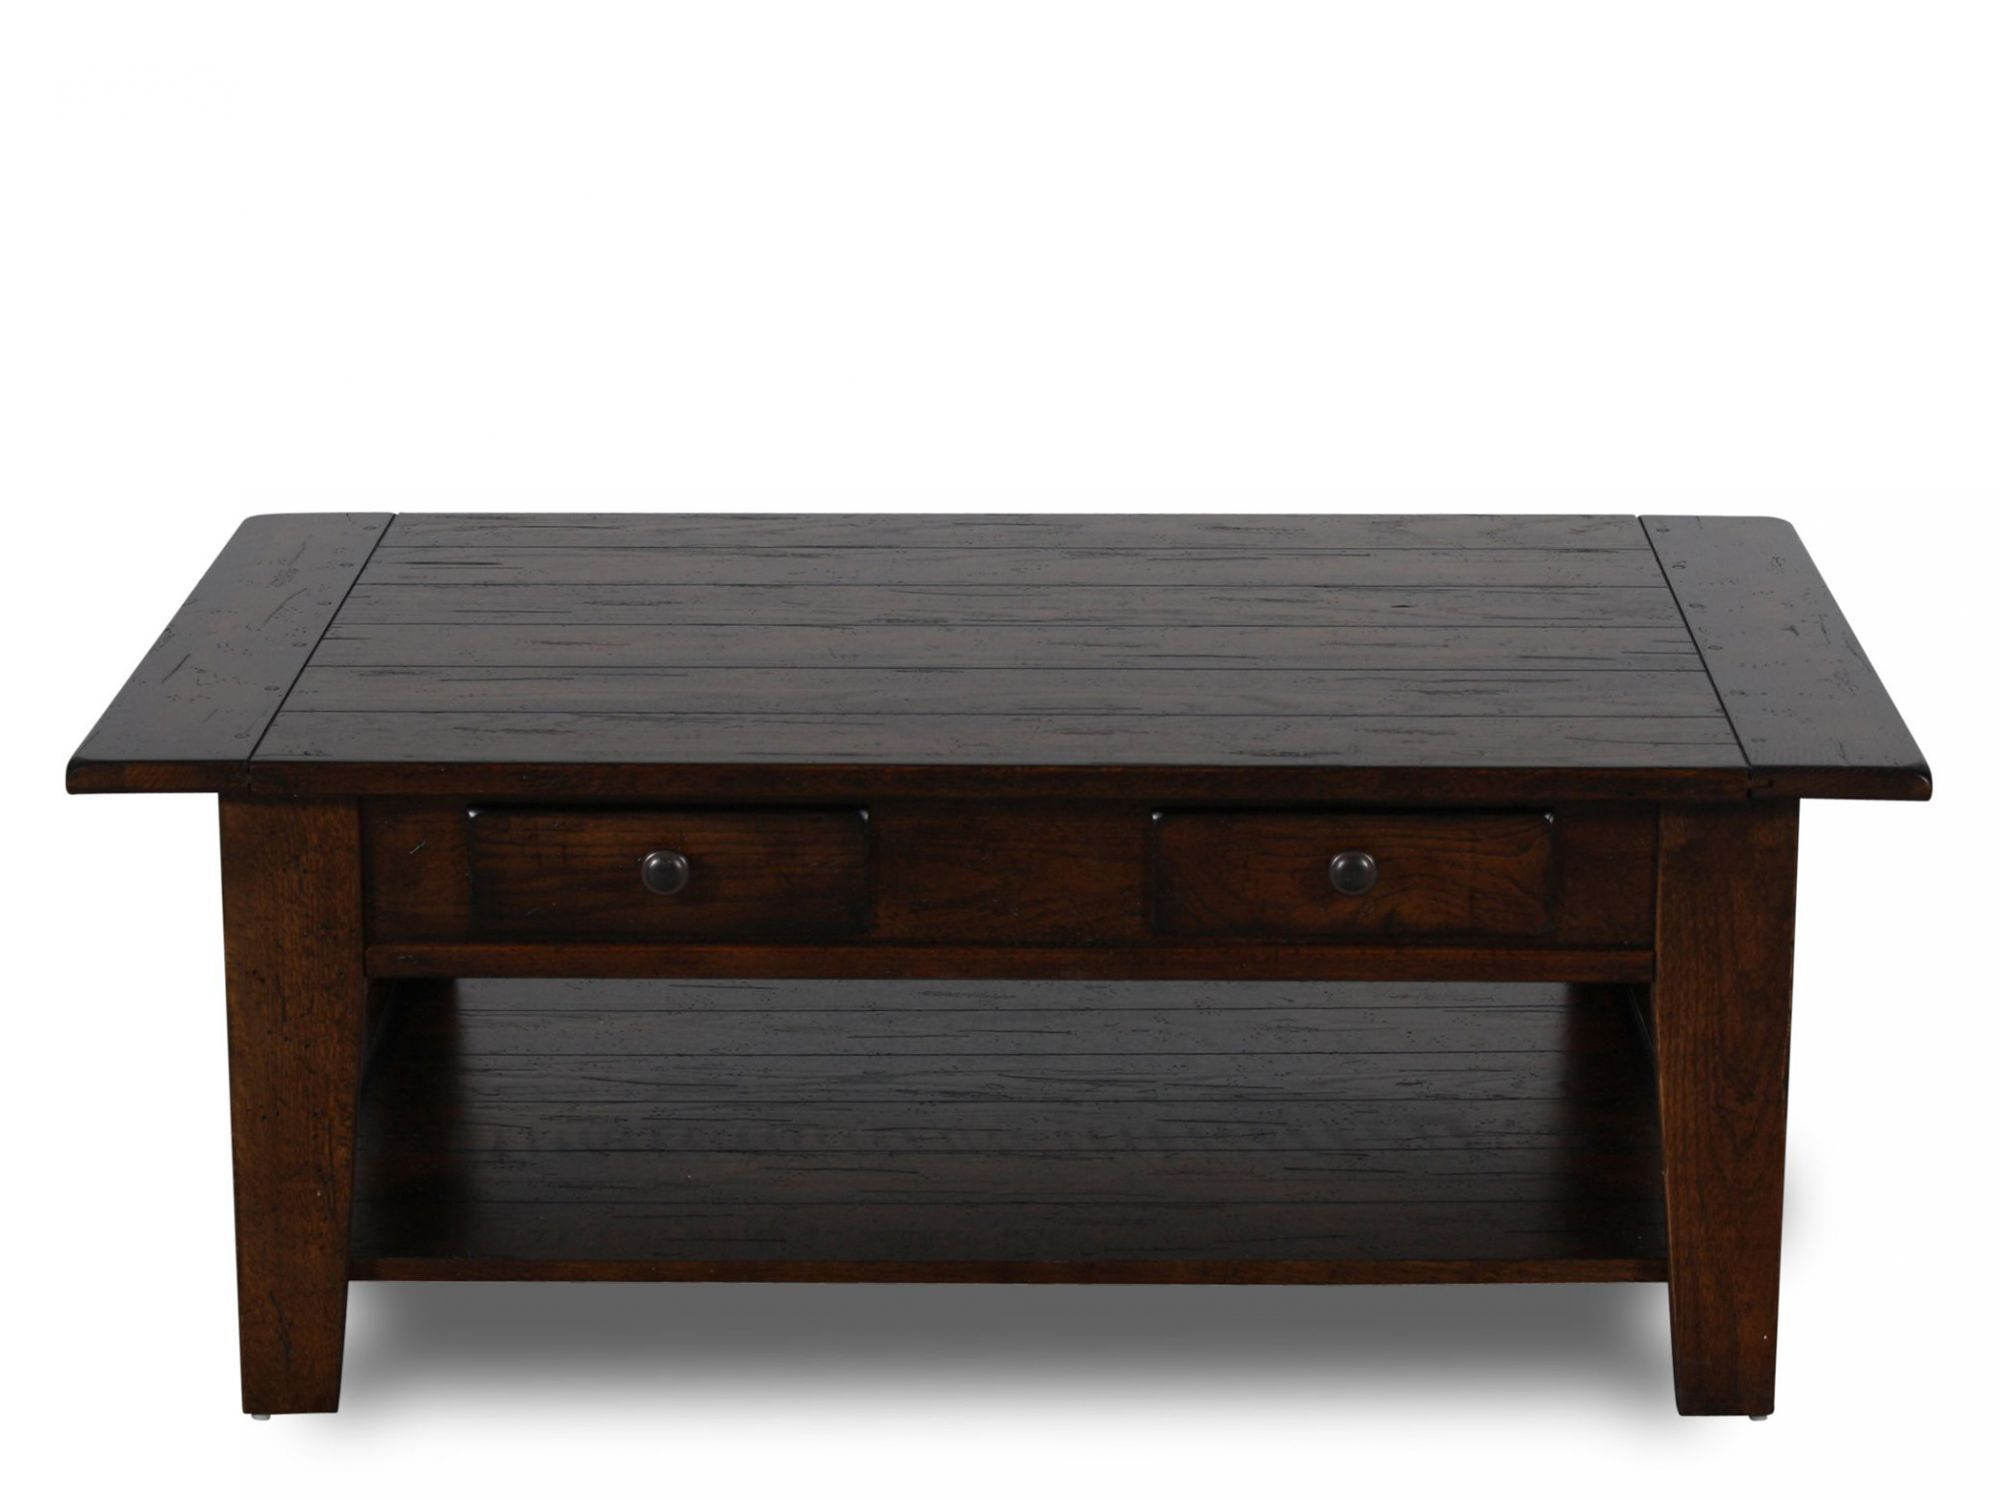 Superb Two Drawer Solid Wood Cocktail Tableu0026nbsp;in Rustic Oak